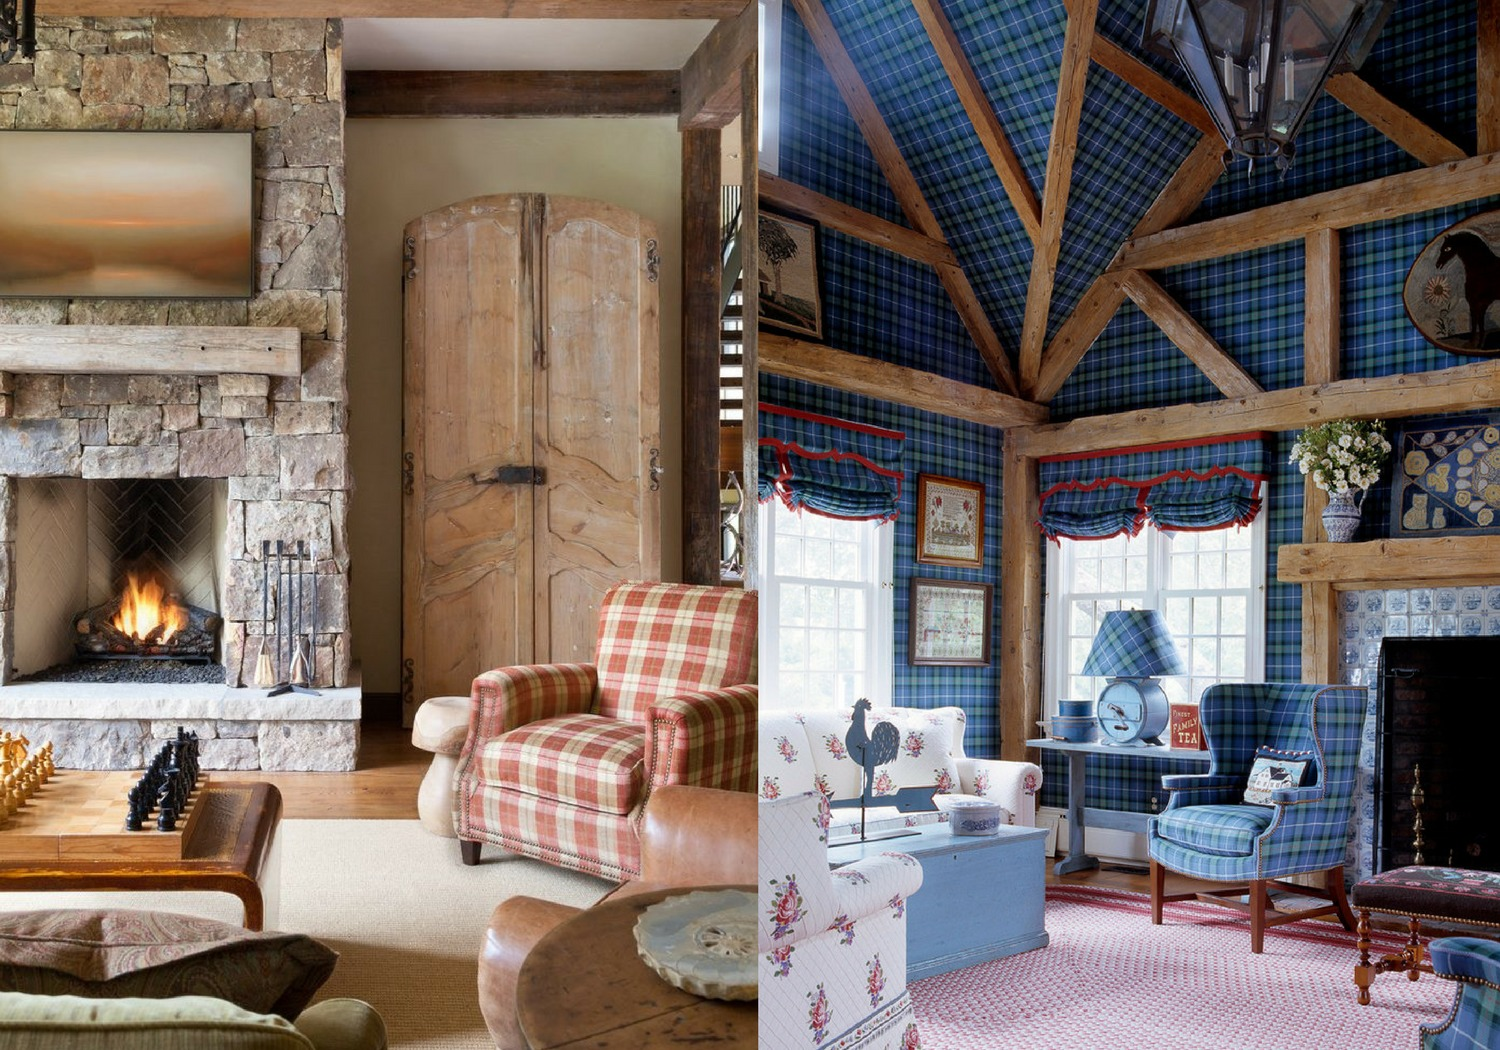 Mad For Plaid Creative Ways To Decorate With The Tartan Trend